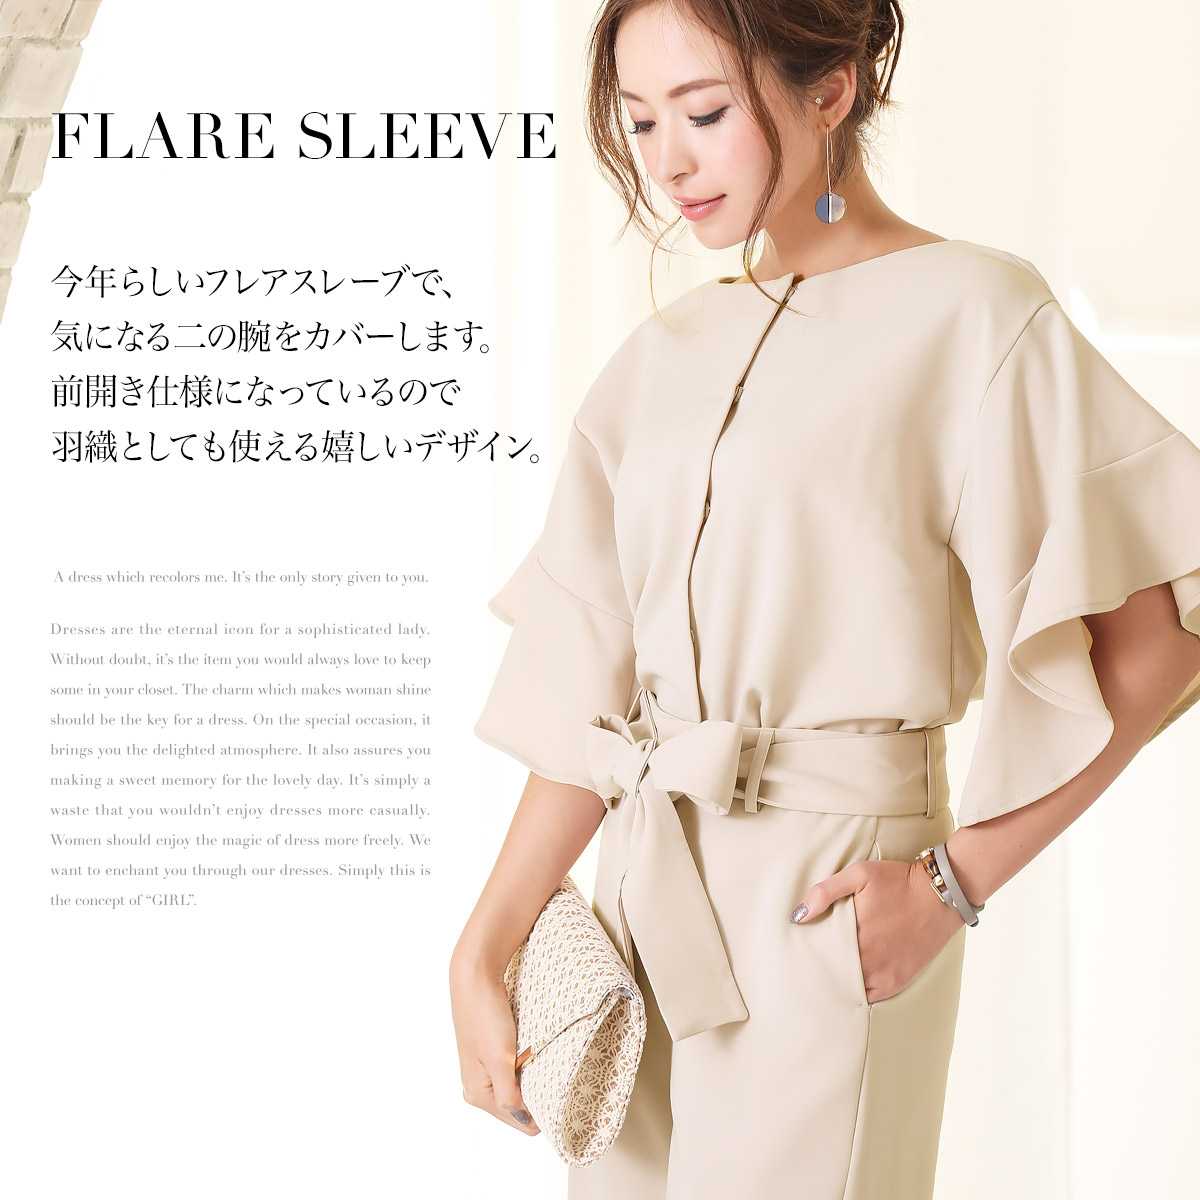 5b4ce8abb85 ... Short-sleeved tops blouse bottom span spiral shellfish roast autumn  with the party dress pantdress ...